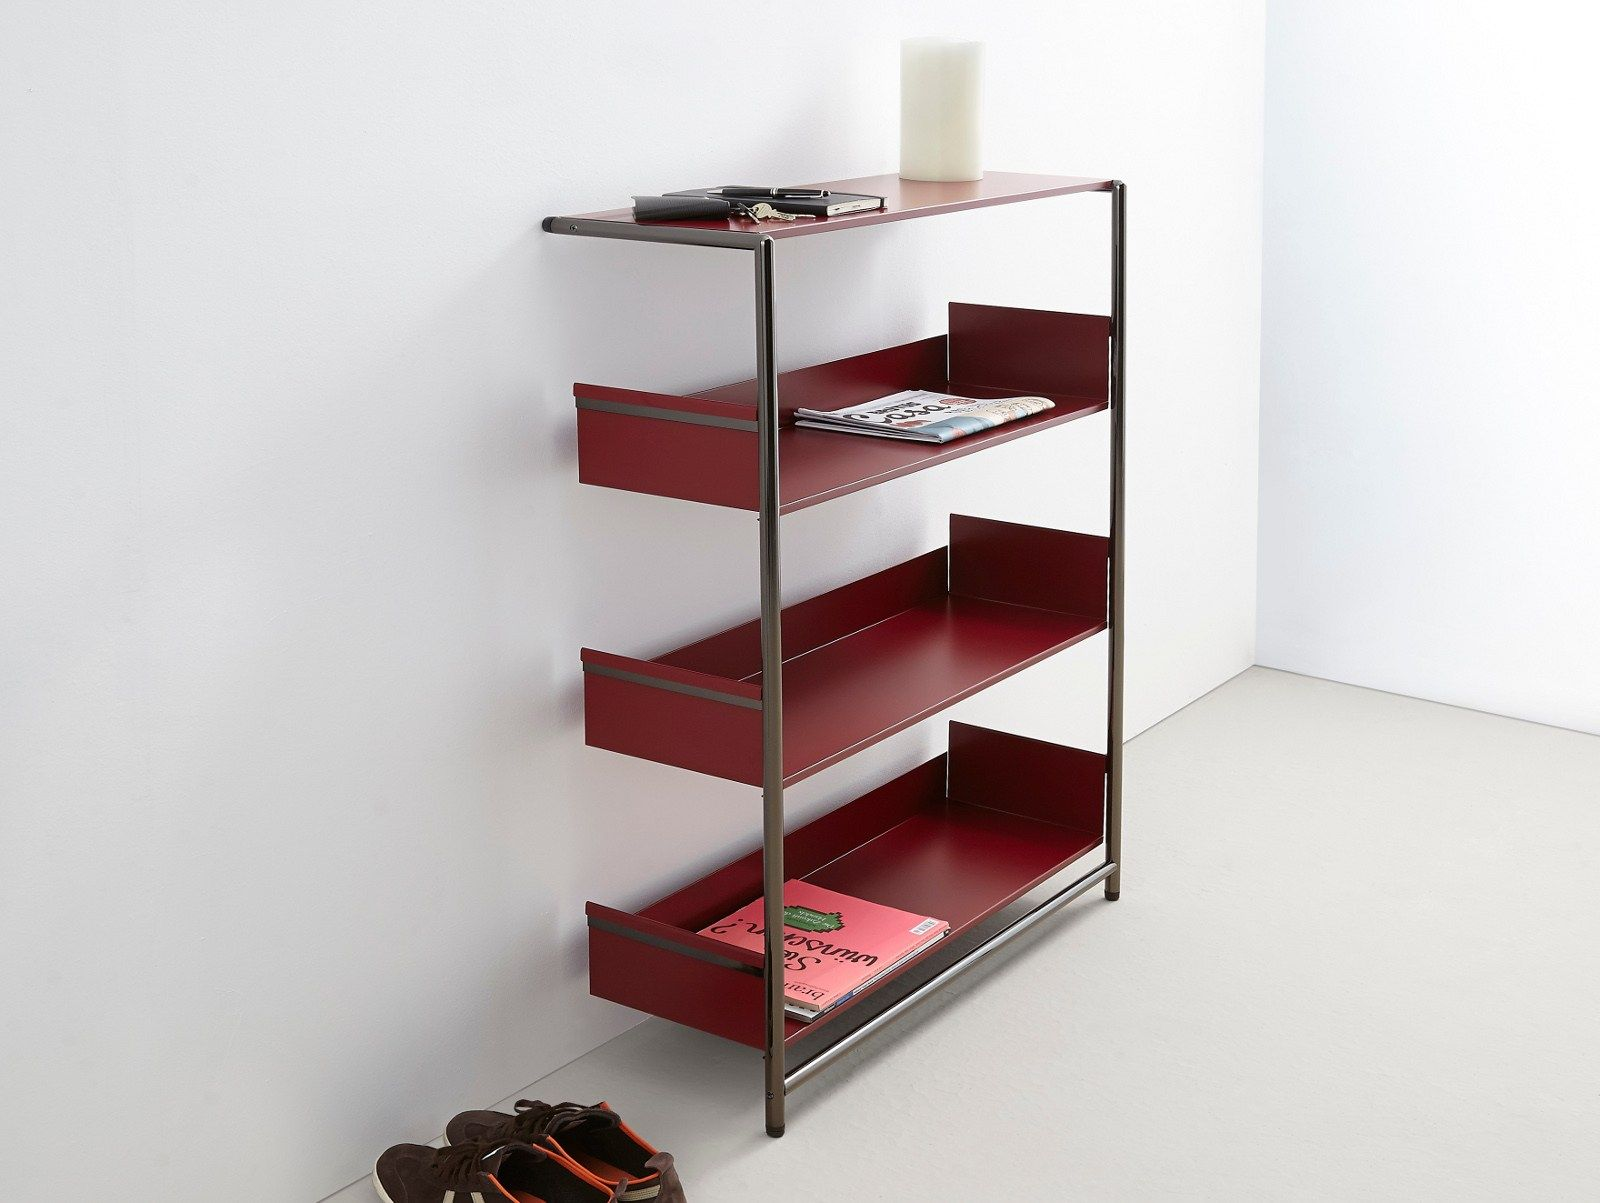 Lacquered powder coated steel shelving unit POOL 110 By